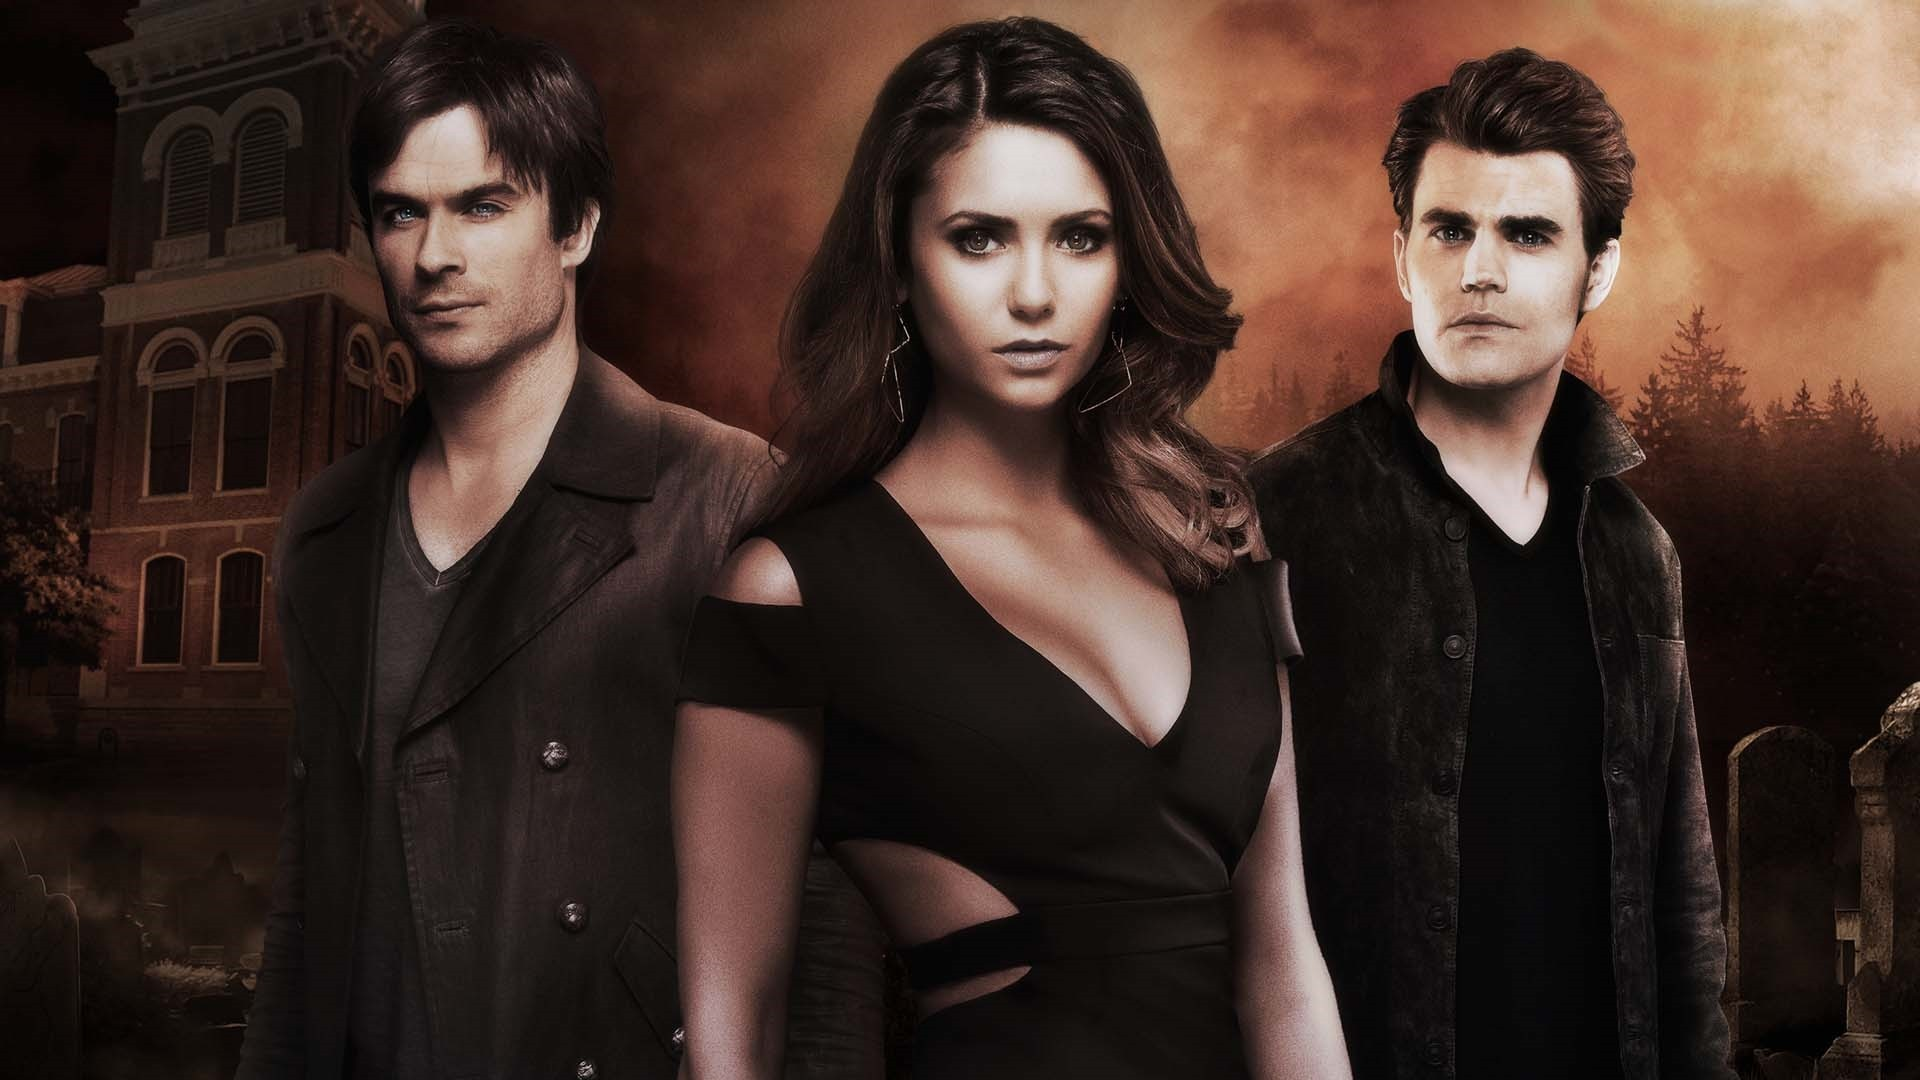 Vampire Diaries Wallpapers: 24 Images, Movie & TV Category